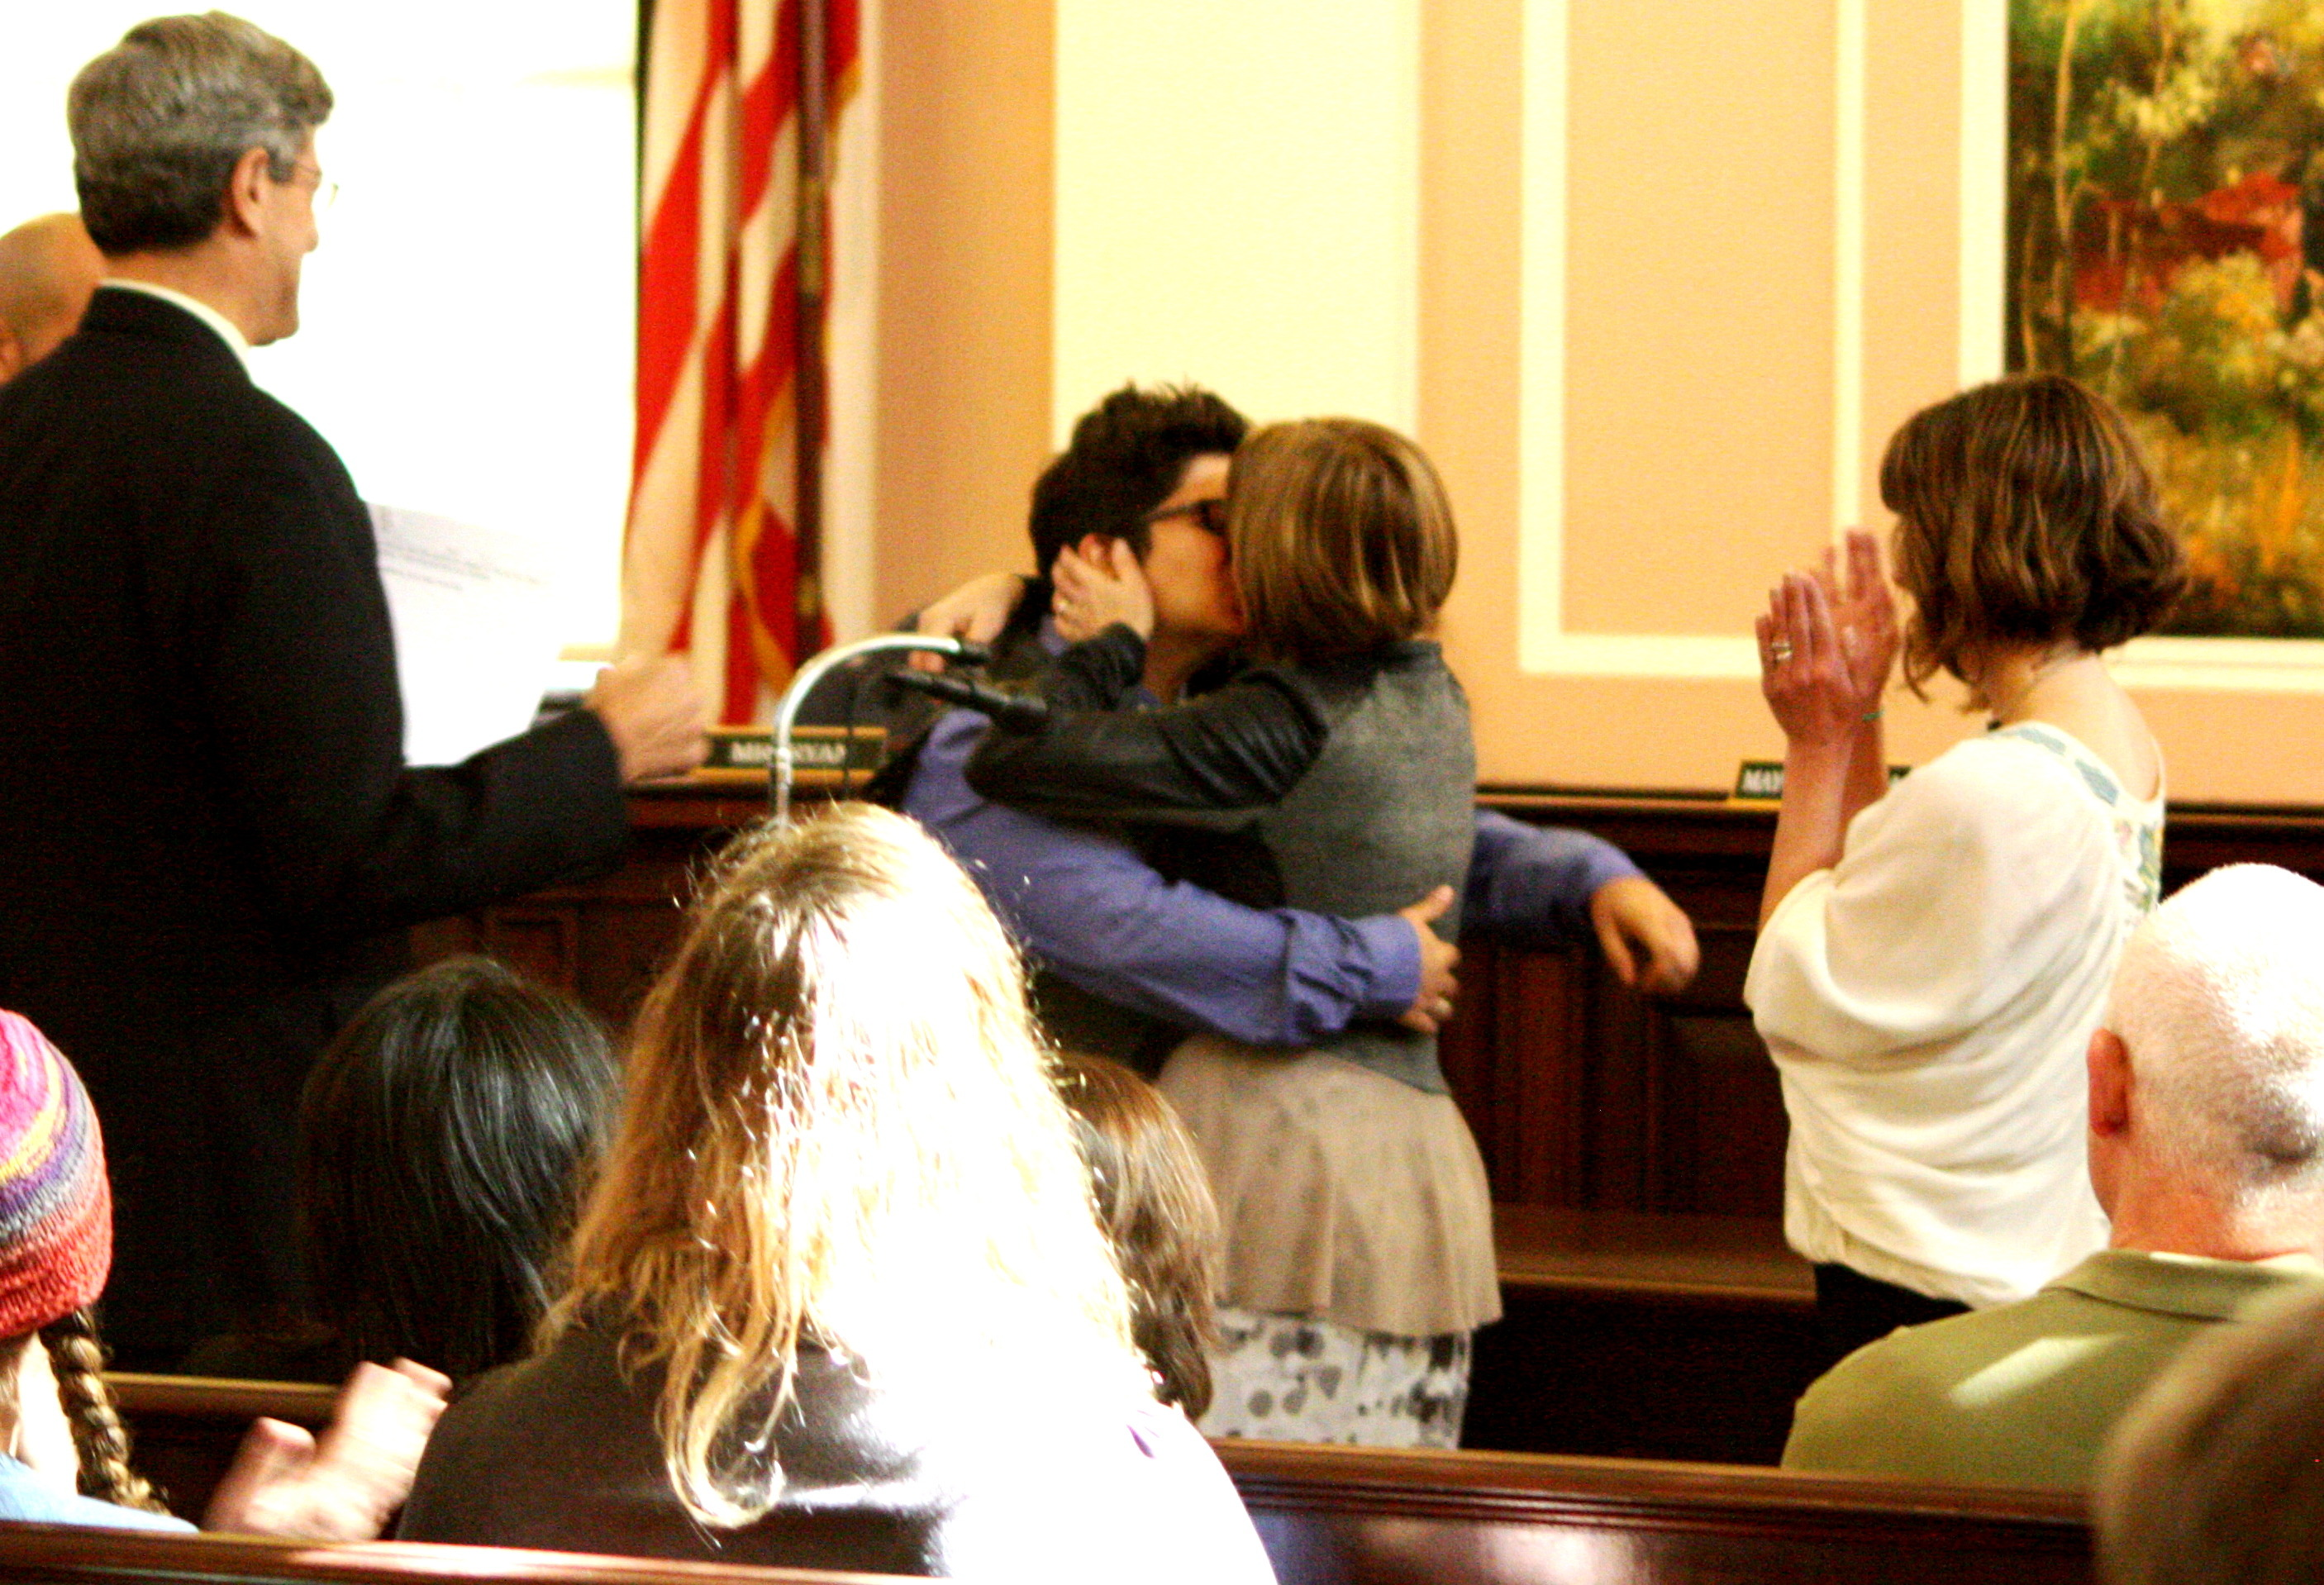 Maplewood's First Same-Sex Marriage Ceremony Performed